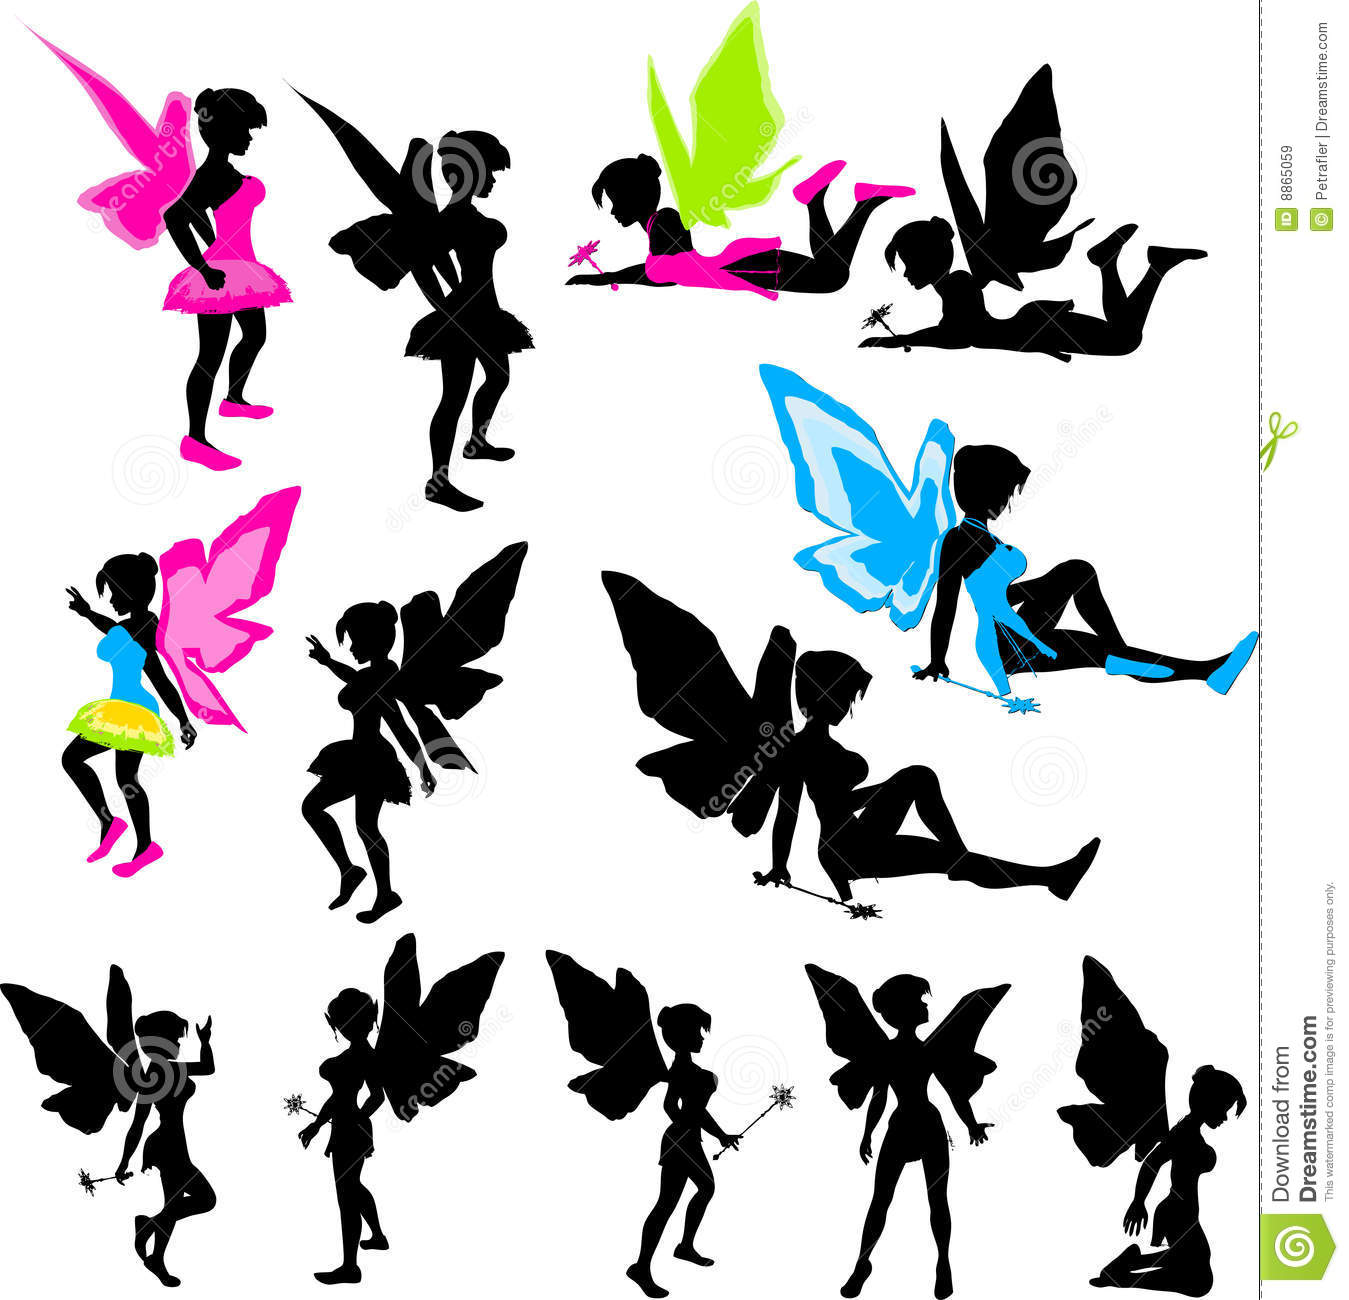 Neon Fairy Silhouettes Royalty Free Stock Images Image